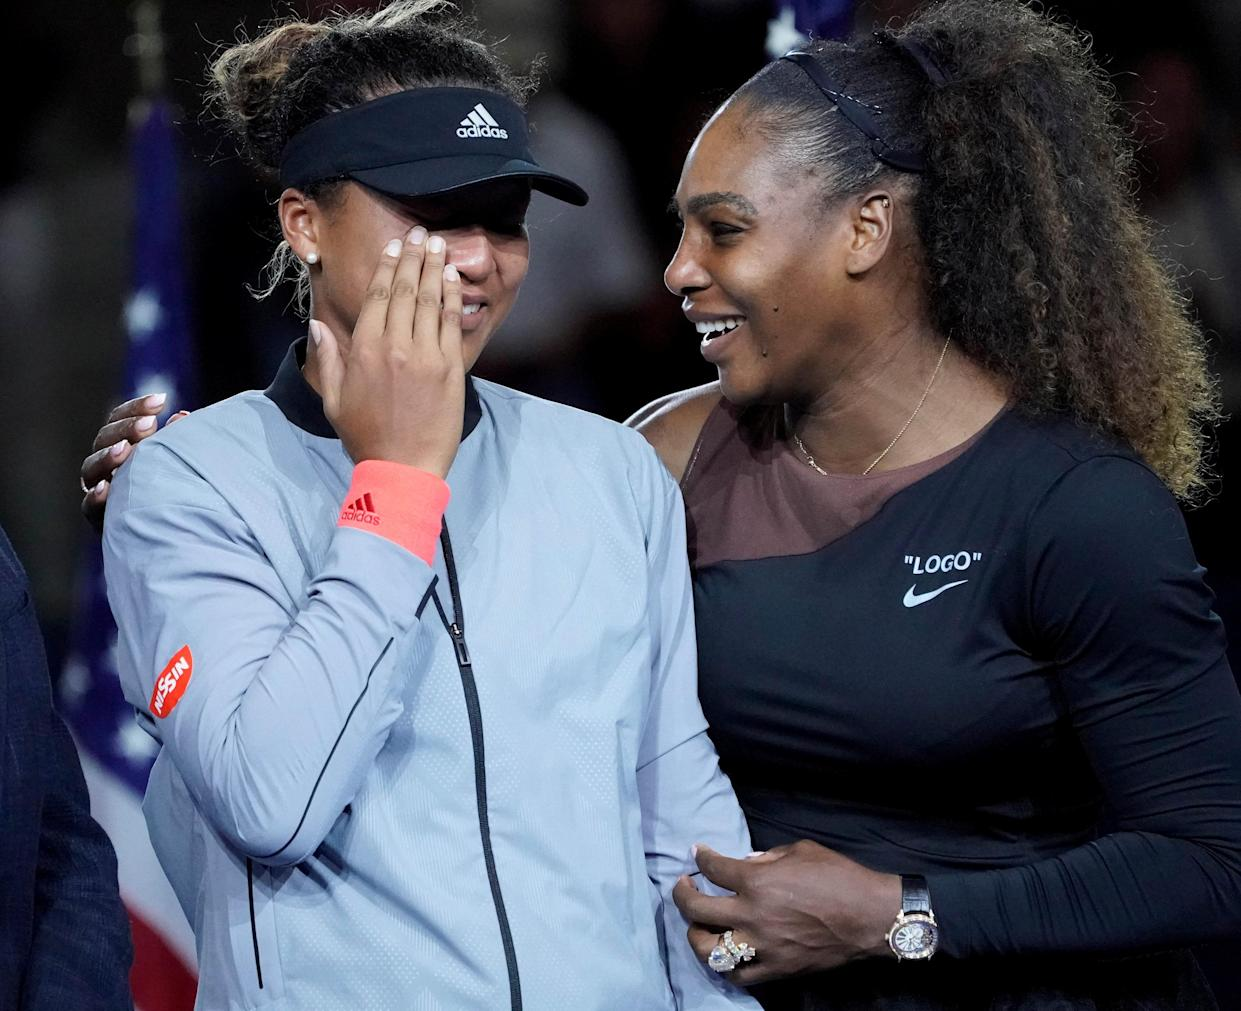 Naomi Osaka of Japan (left) cries as Serena Williams of the USA comforts her after the crowd booed during the trophy ceremony following the women's final on day thirteen of the 2018 U.S. Open tennis tournament. Osaka defeated Williams in the women's final of the U.S. Open. Credit: Robert Deutsch-USA TODAY Sports TPX IMAGES OF THE DAY